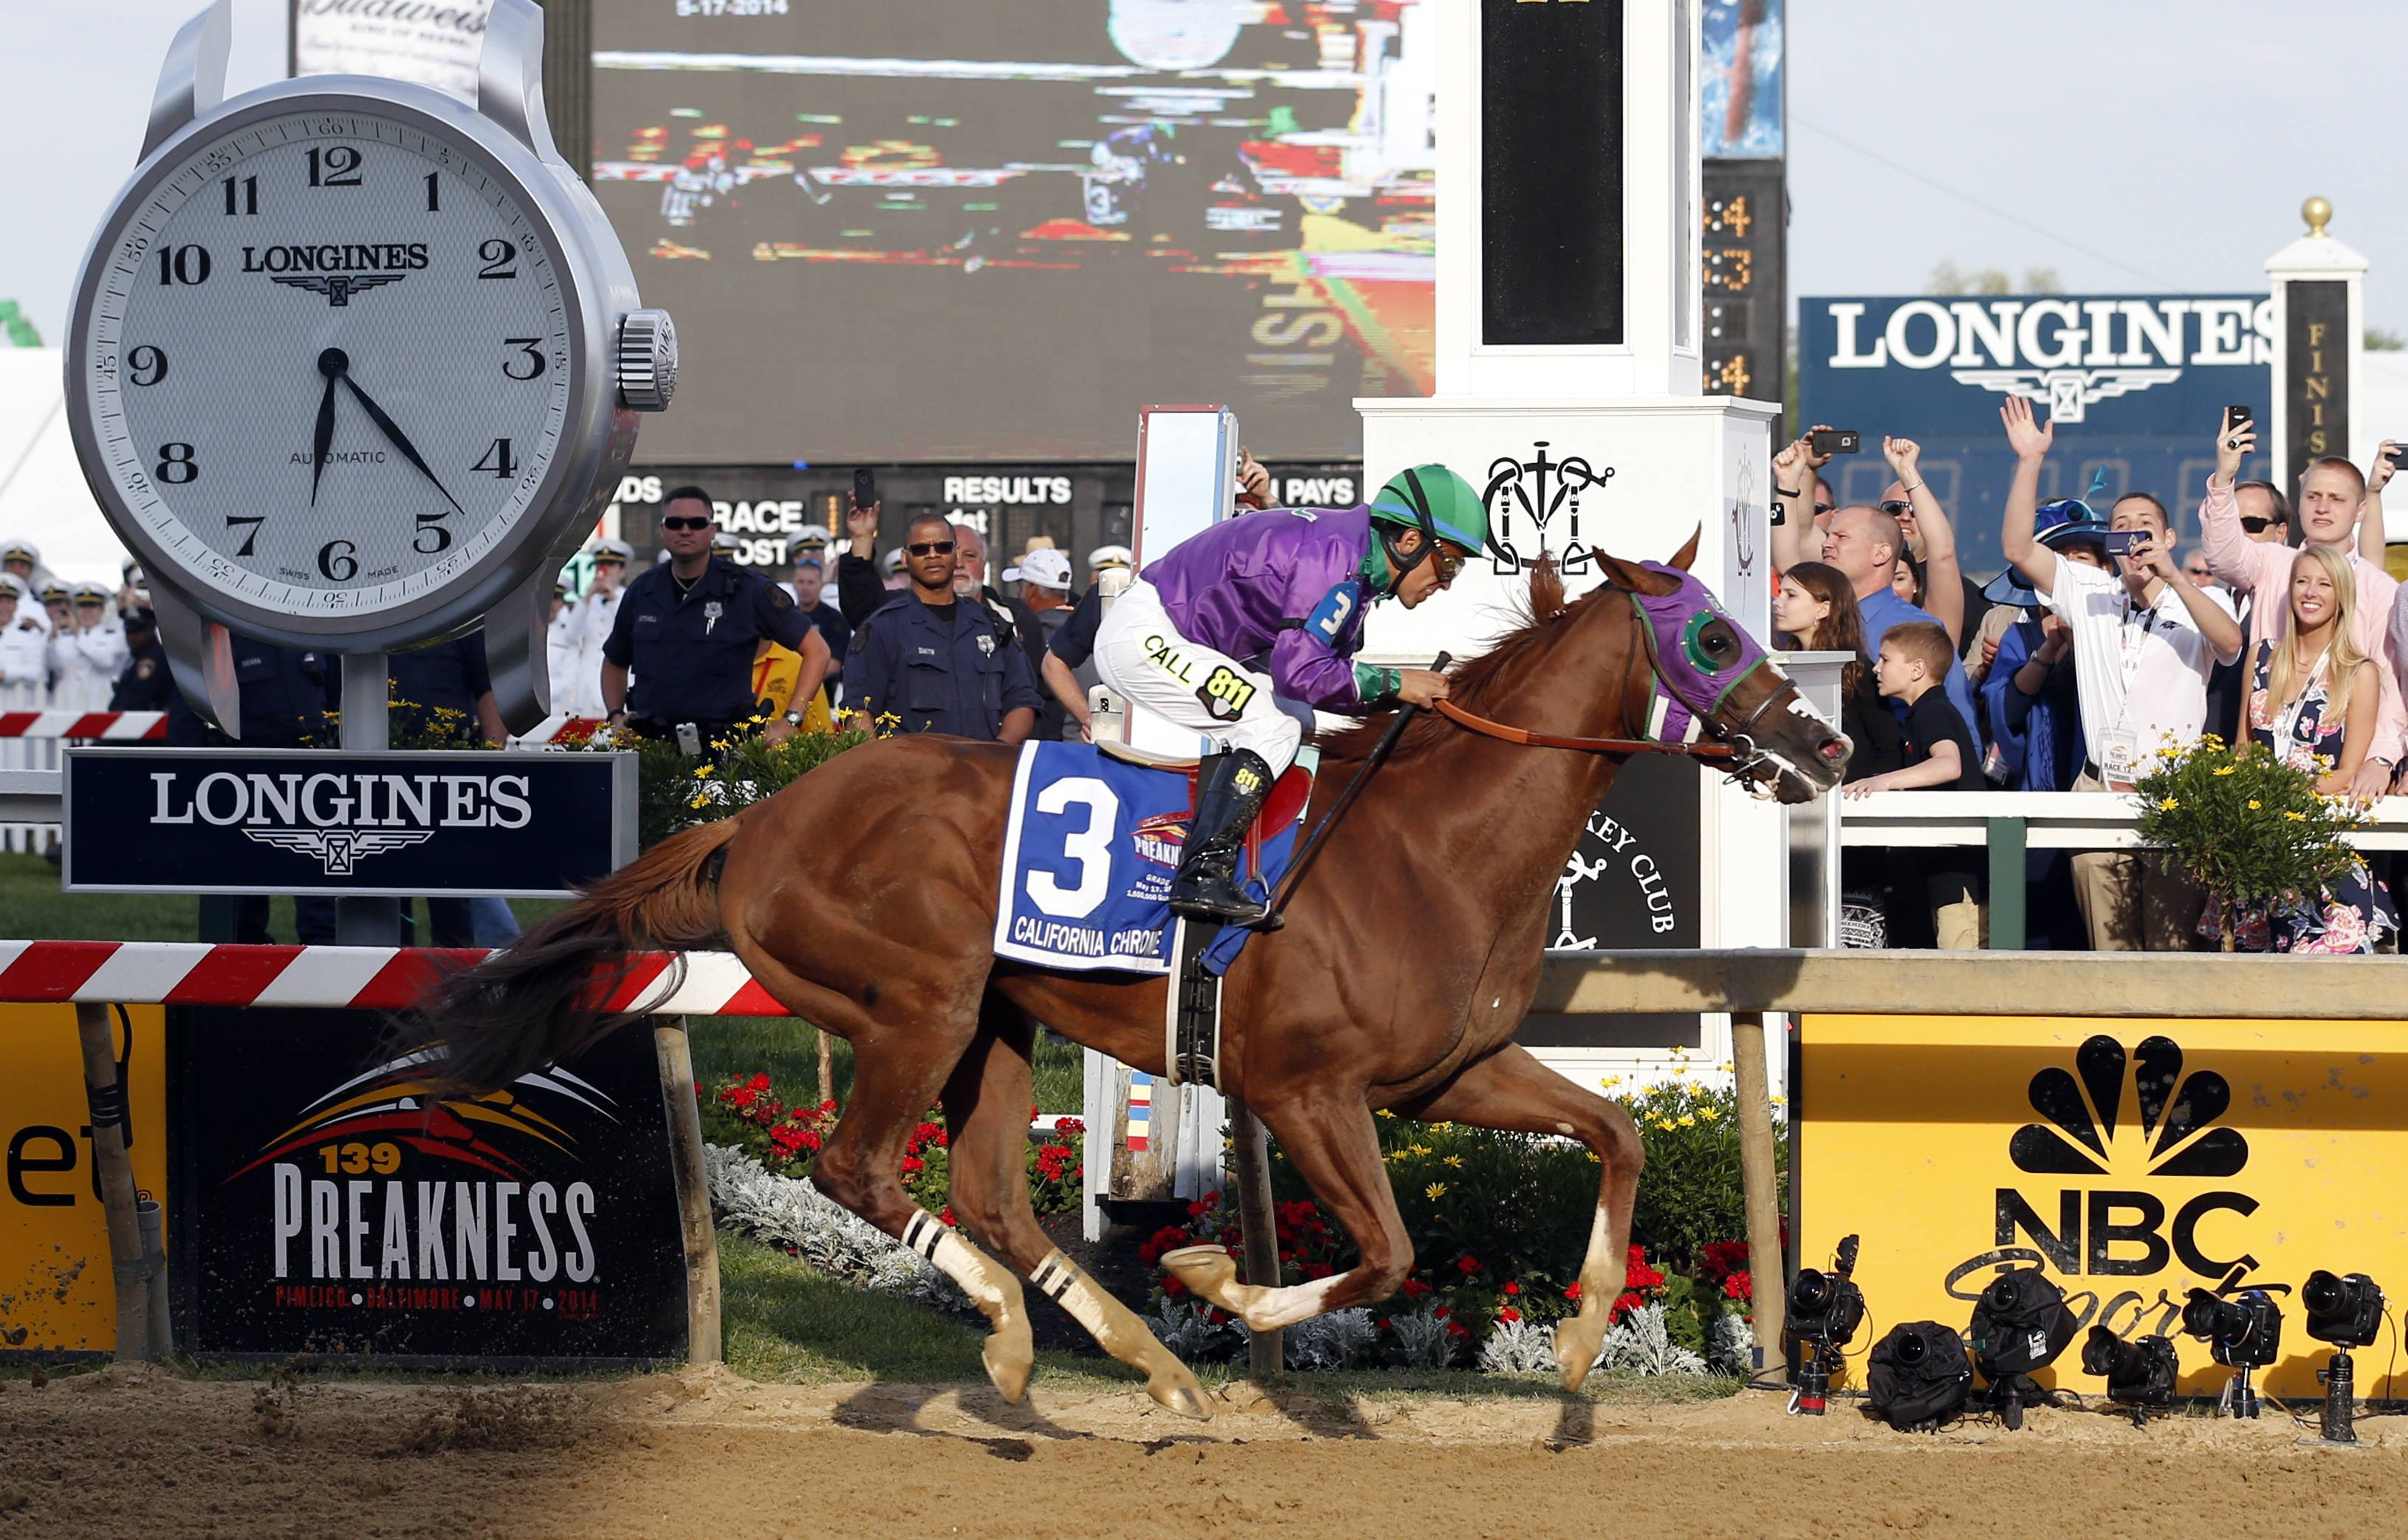 California Chrome, ridden by jockey Victor Espinoza, wins the 139th Preakness Stakes horse race at Pimlico Race Course Saturday in Baltimore.